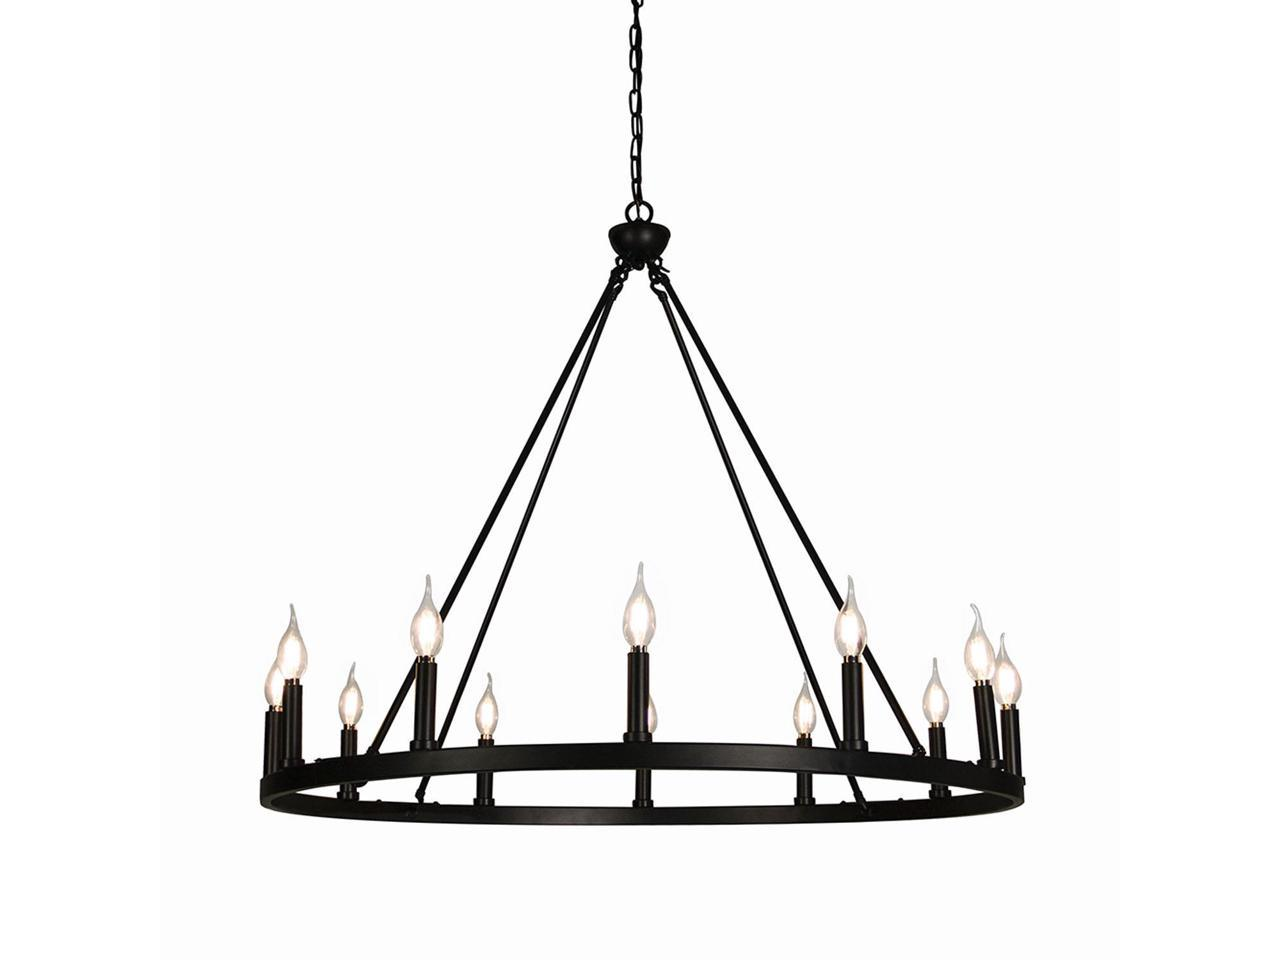 Canyon Home 12 Light Chandelier Wagon Wheel 37 Wide Matte Black Steel Frame Large Home Decoration Foyer Entryway Dining Room Newegg Com